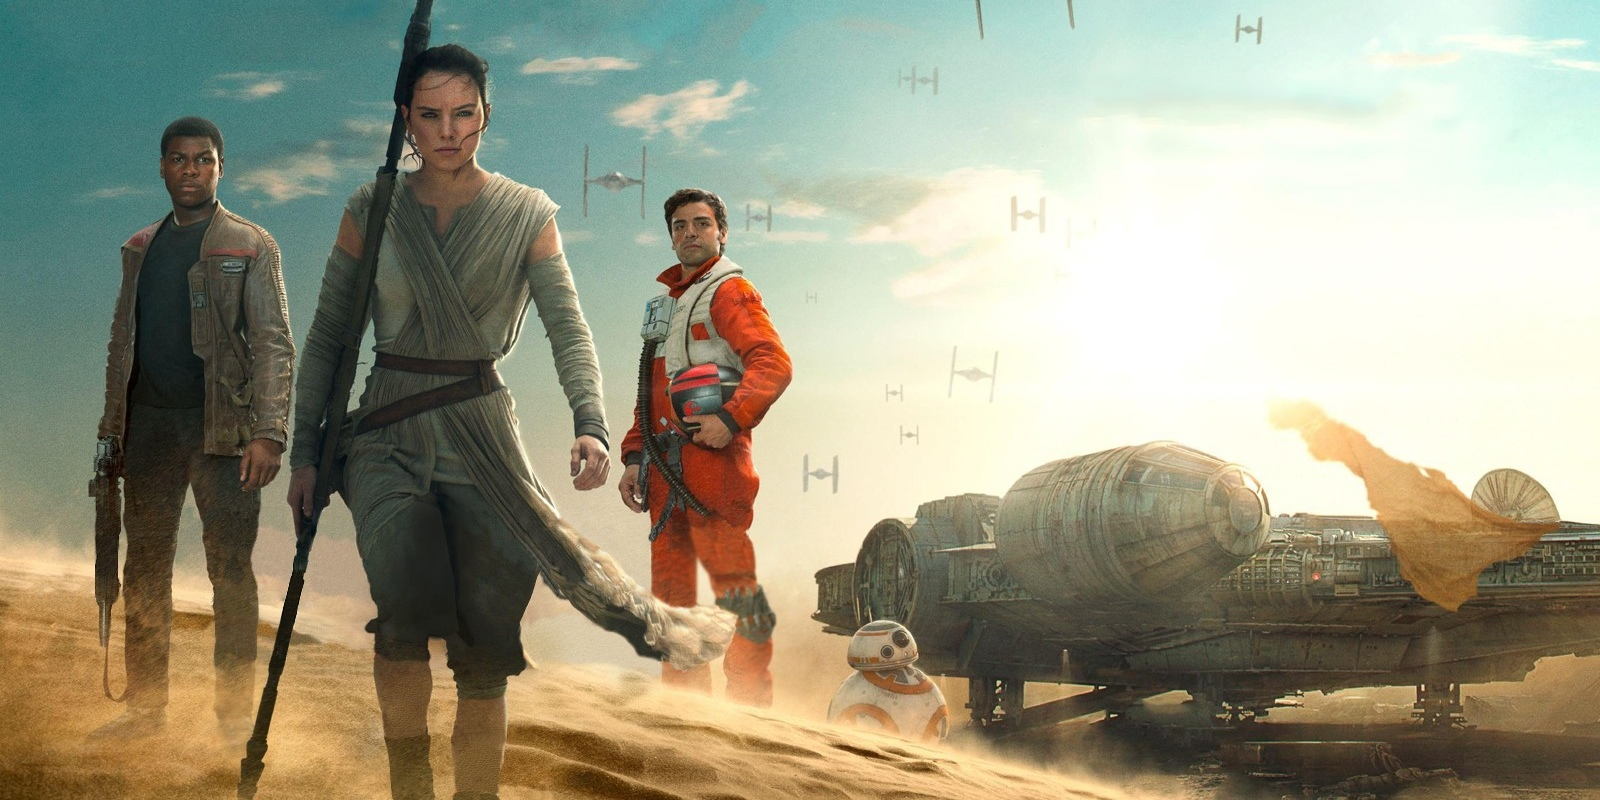 Star Wars Force Awakens Rey Finn Poe wallpaper Star Wars 9: Everything You Need To Know